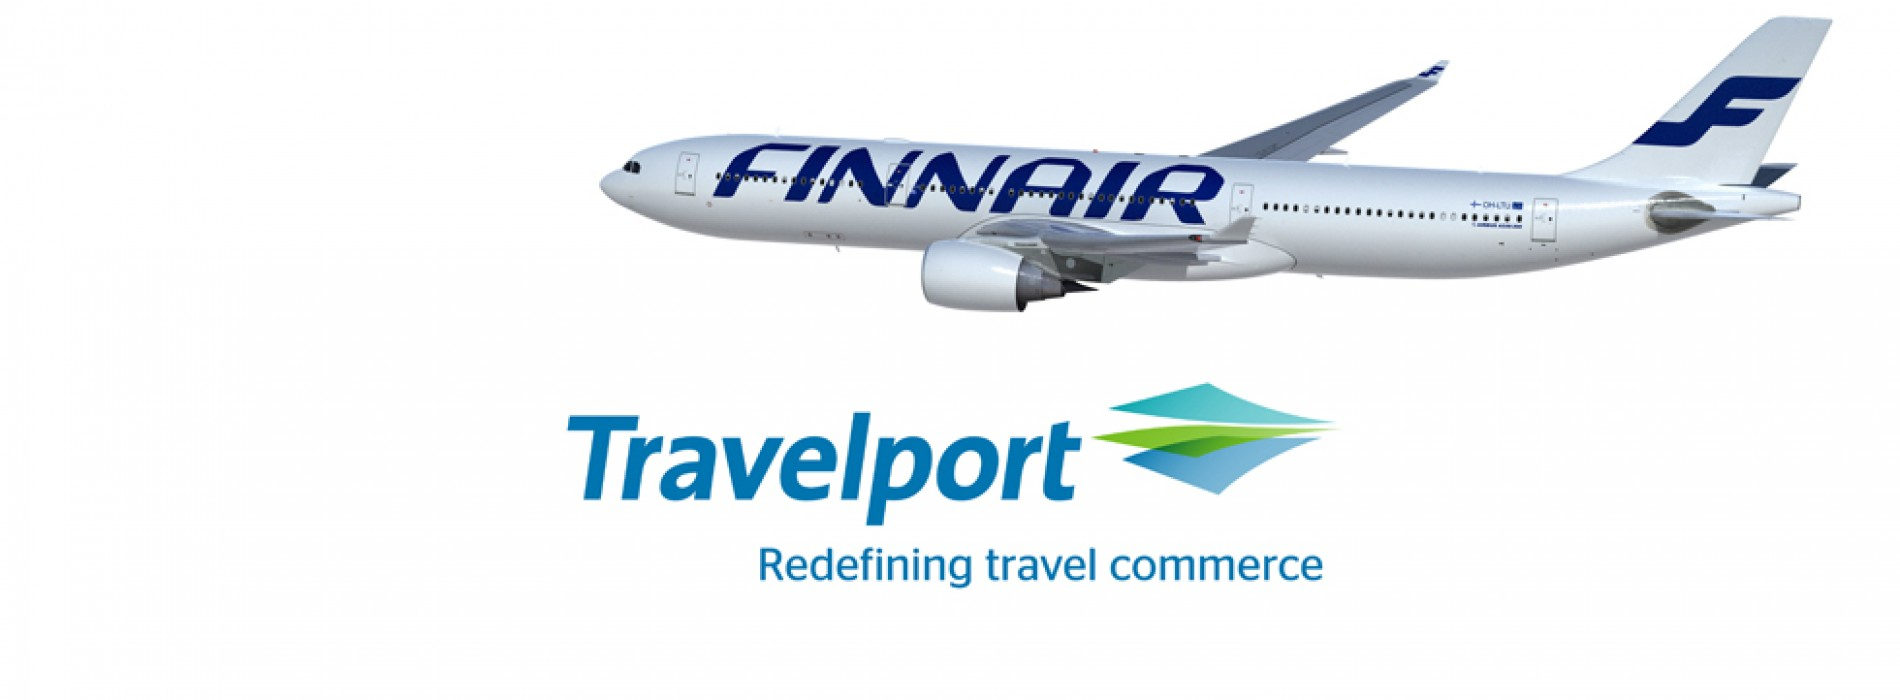 Finnair signs up for Travelport Rich Content distribution